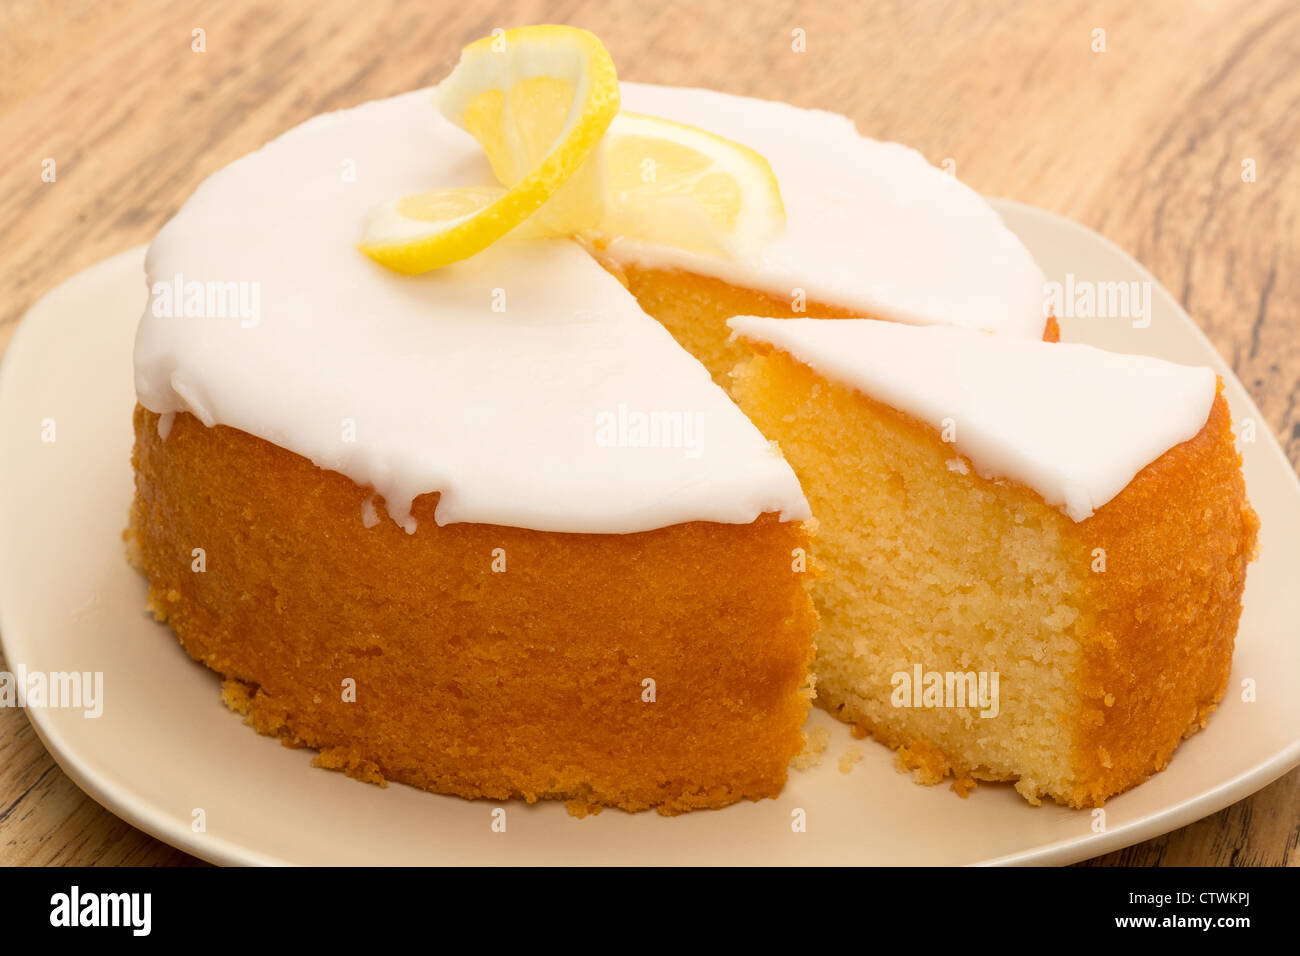 White Drizzle Icing For Bundt Cake